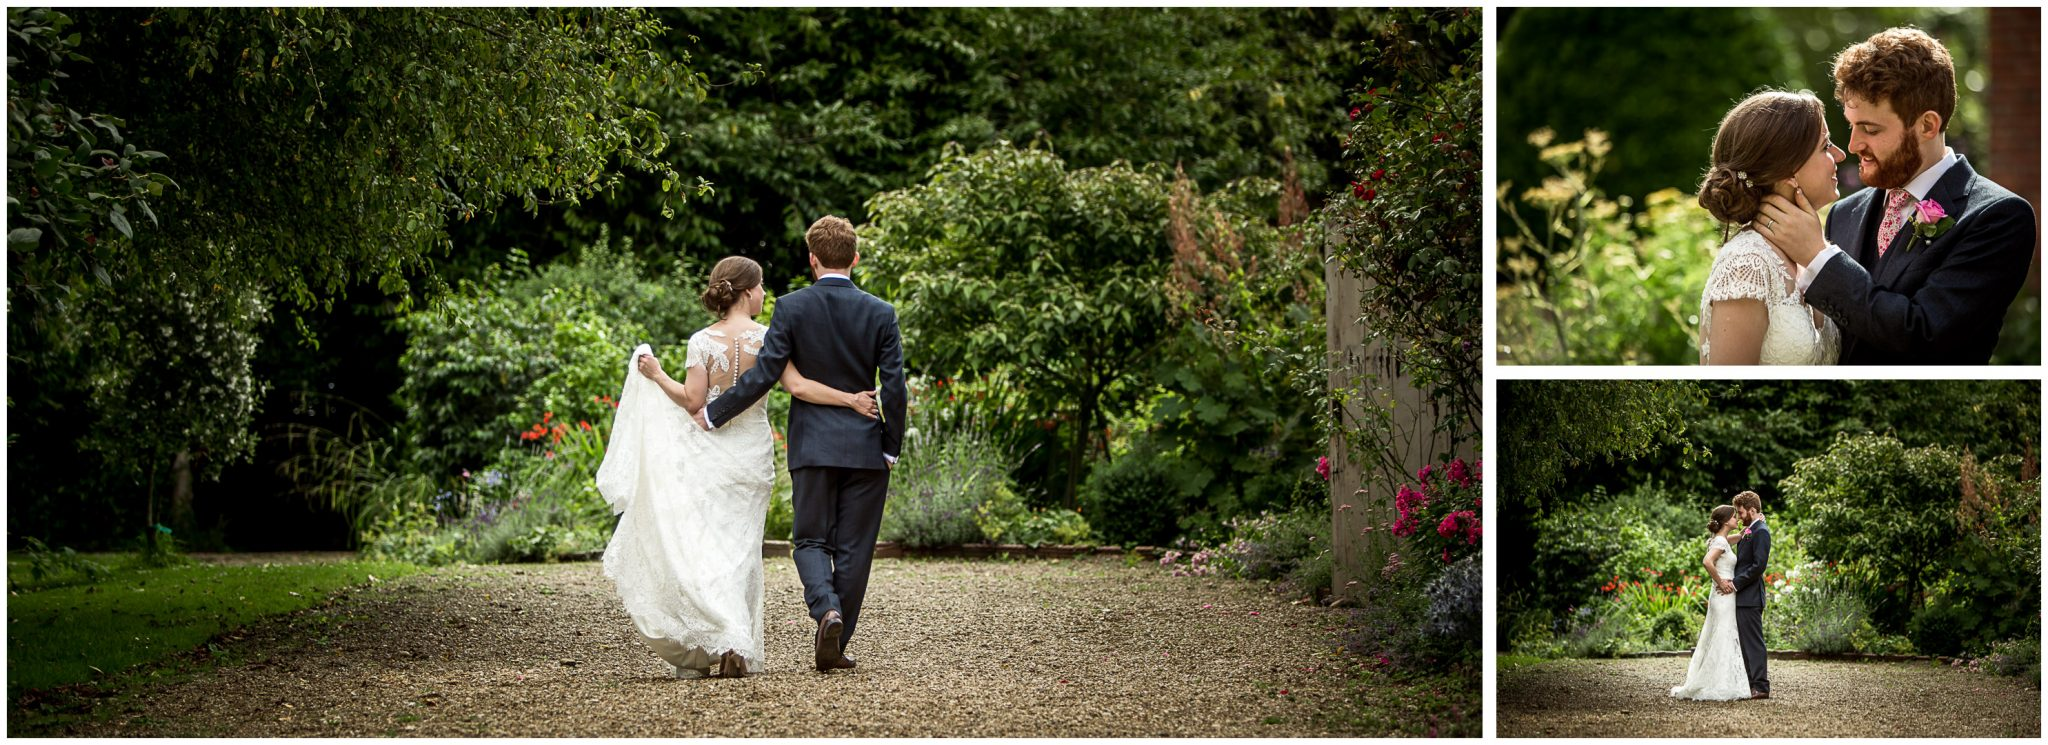 The bride and groom walk through the grounds of the estate